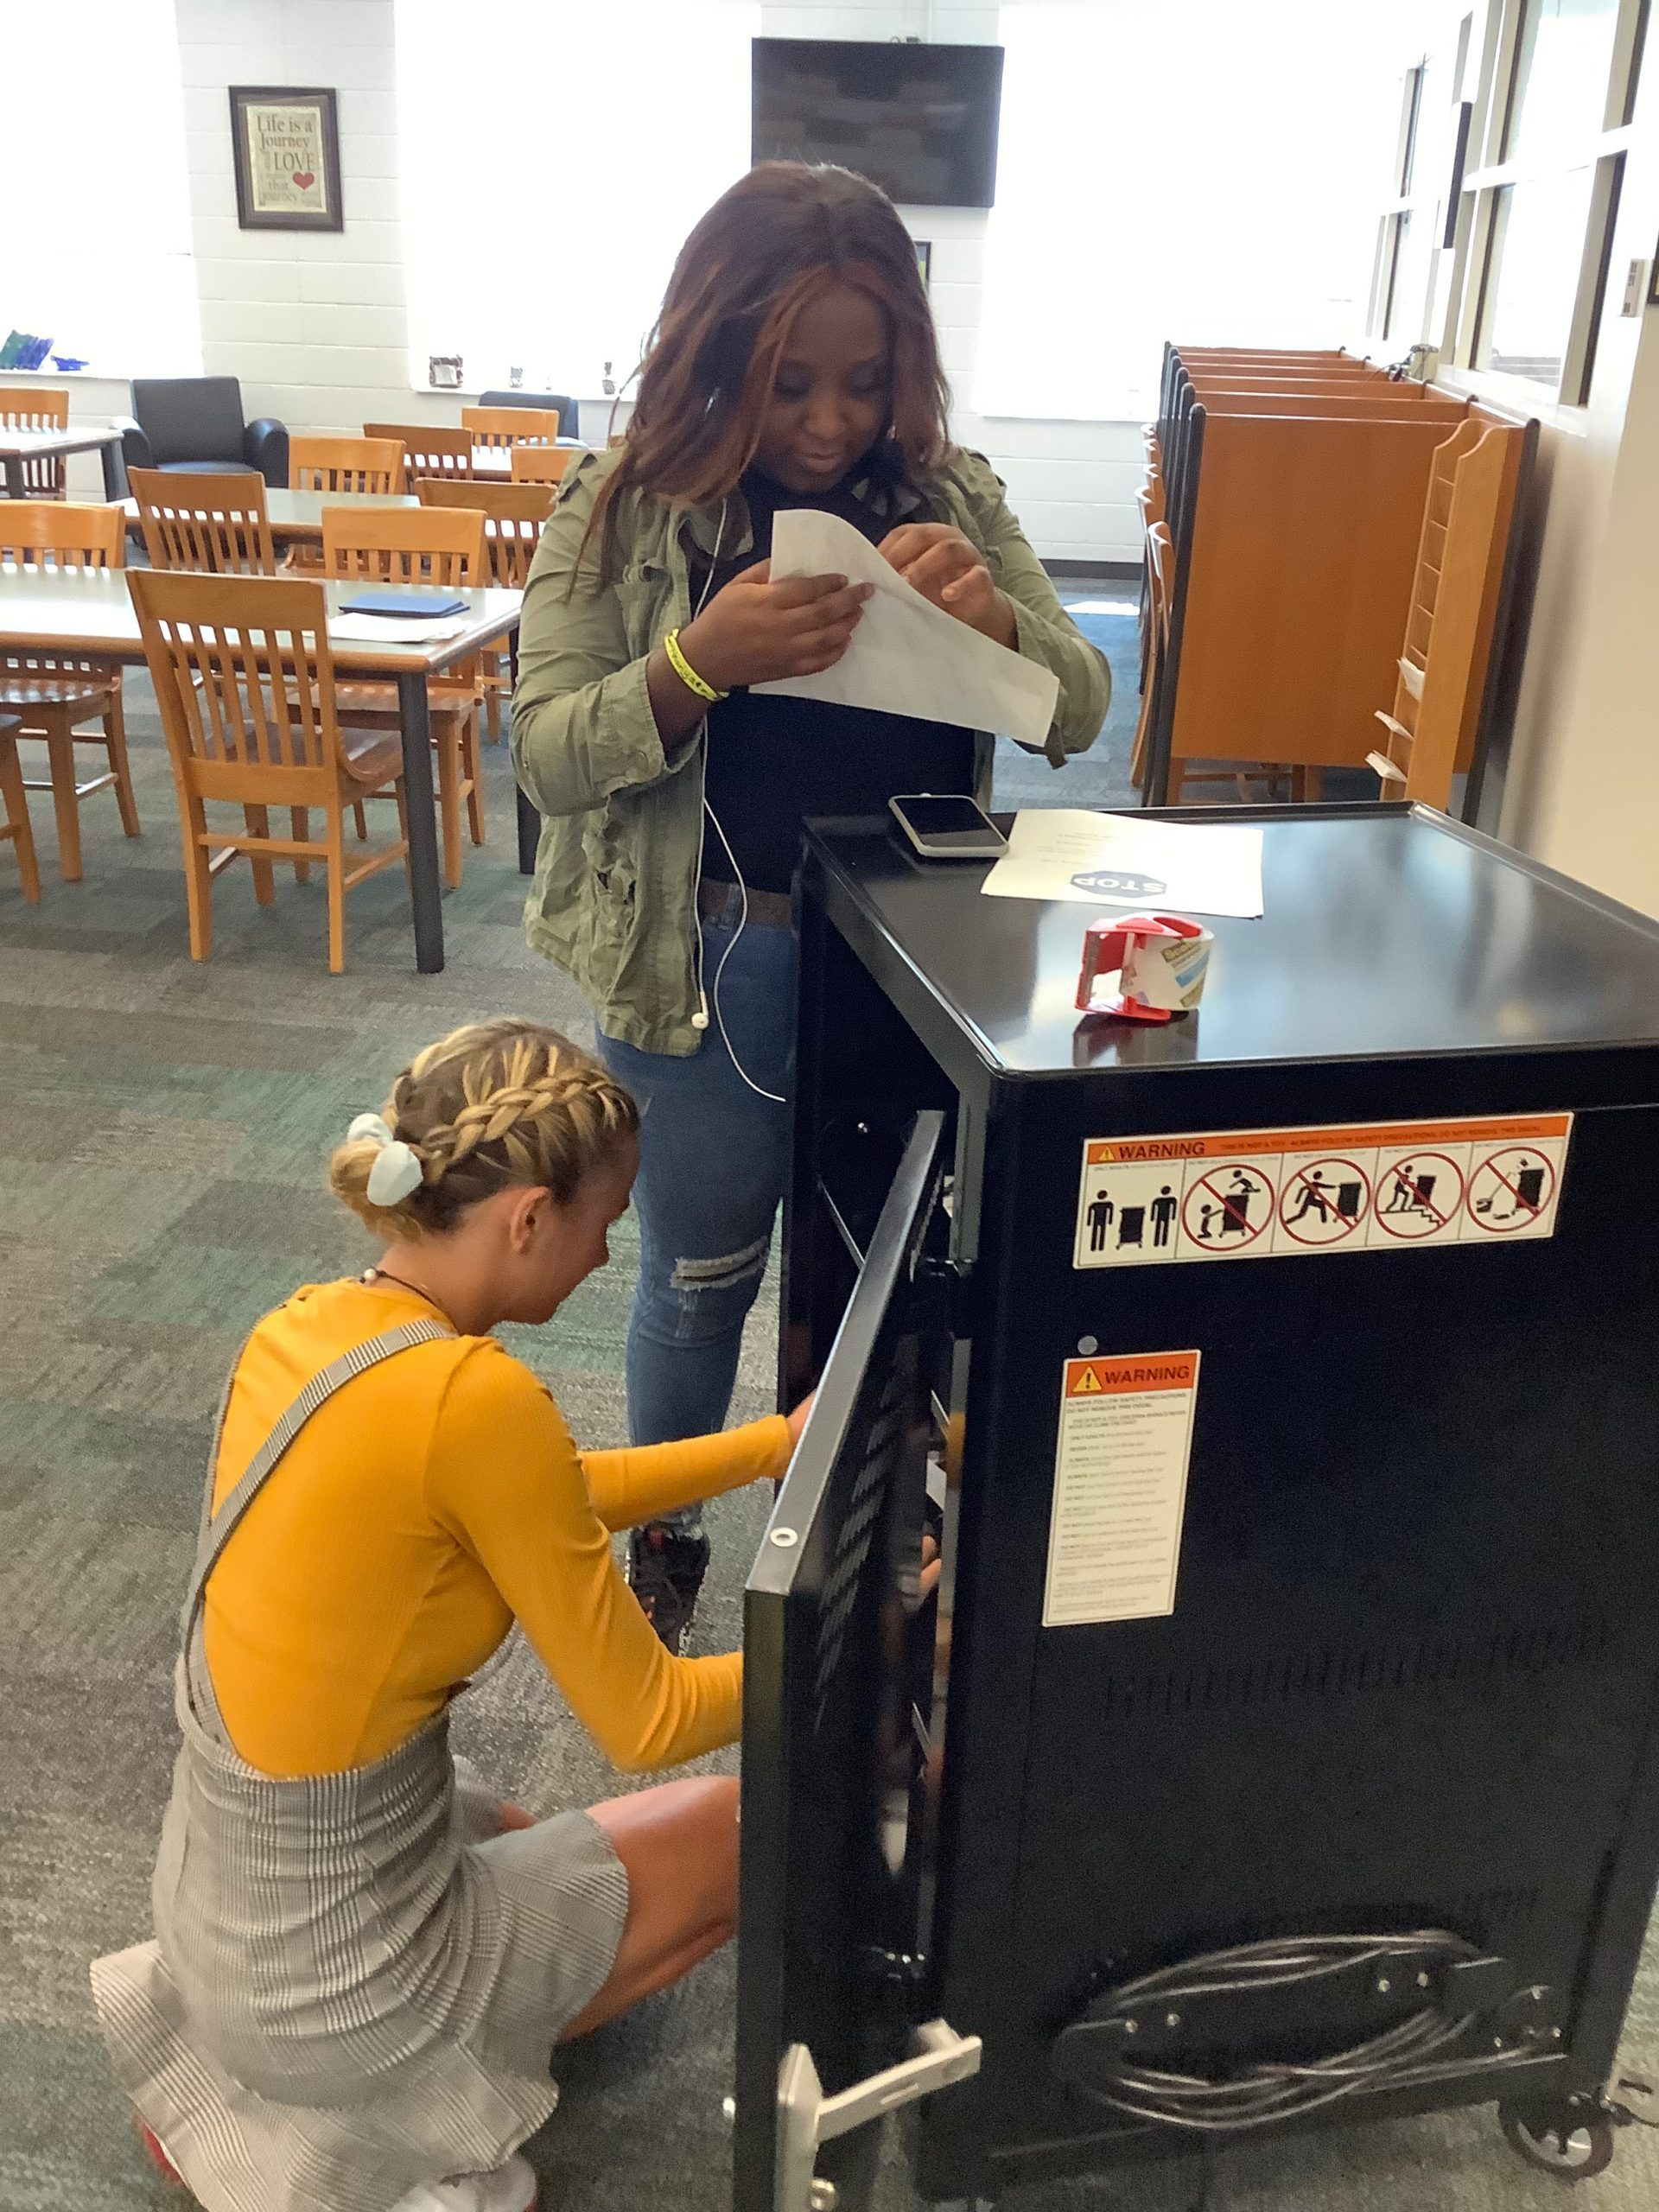 two female students putting stickers on laptops in a laptop cart in the library